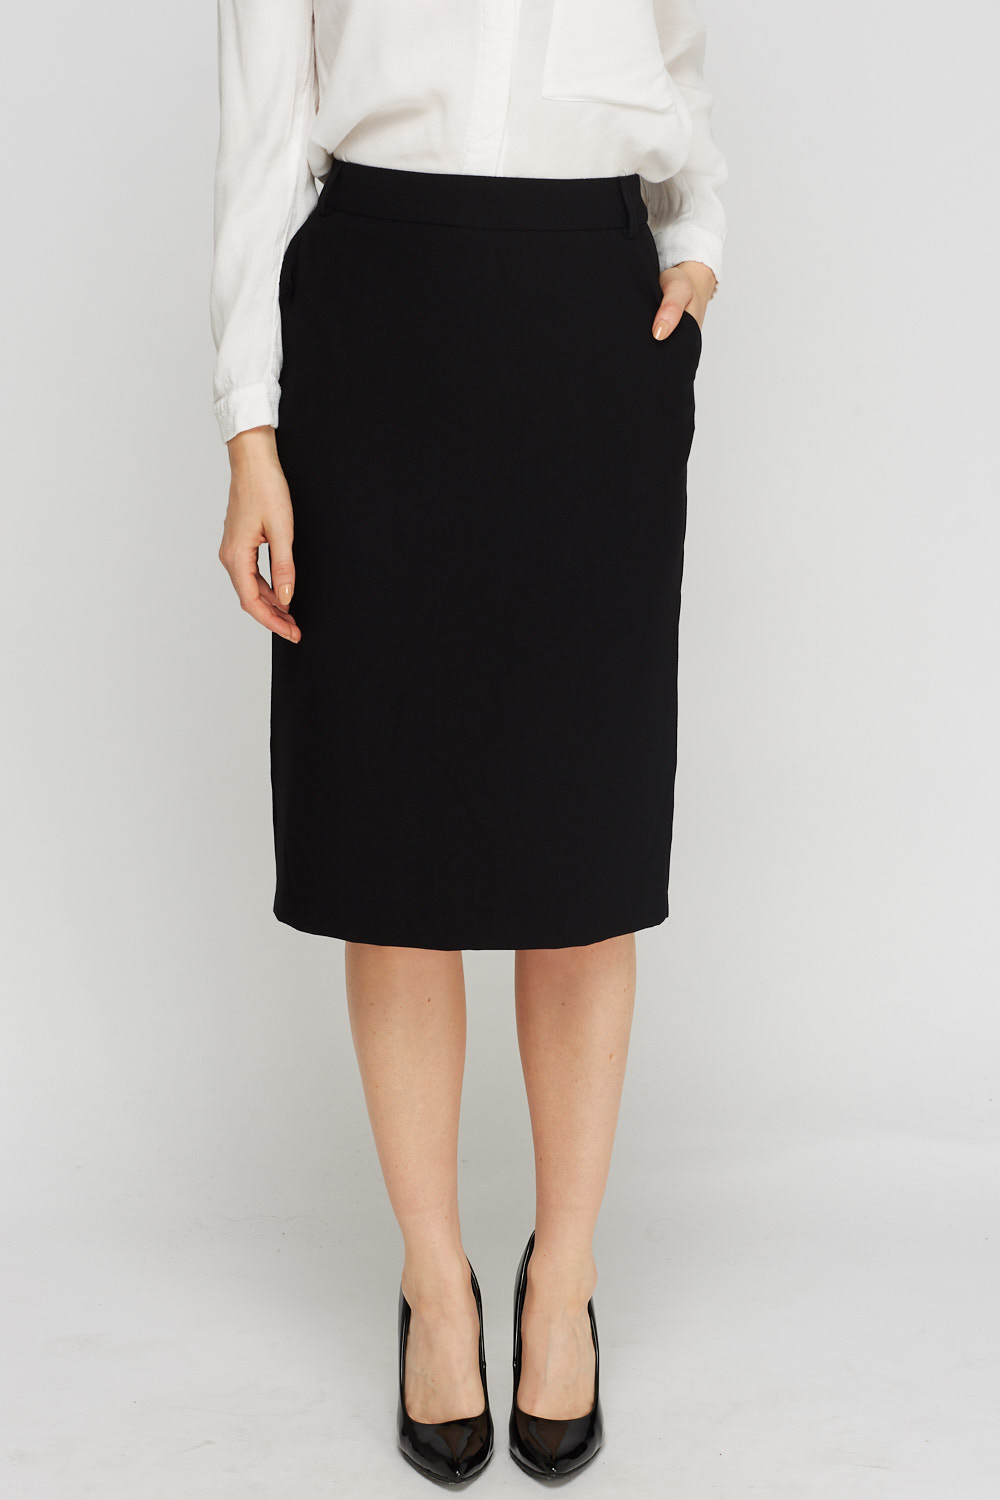 Black Formal Midi Skirt Just 163 5